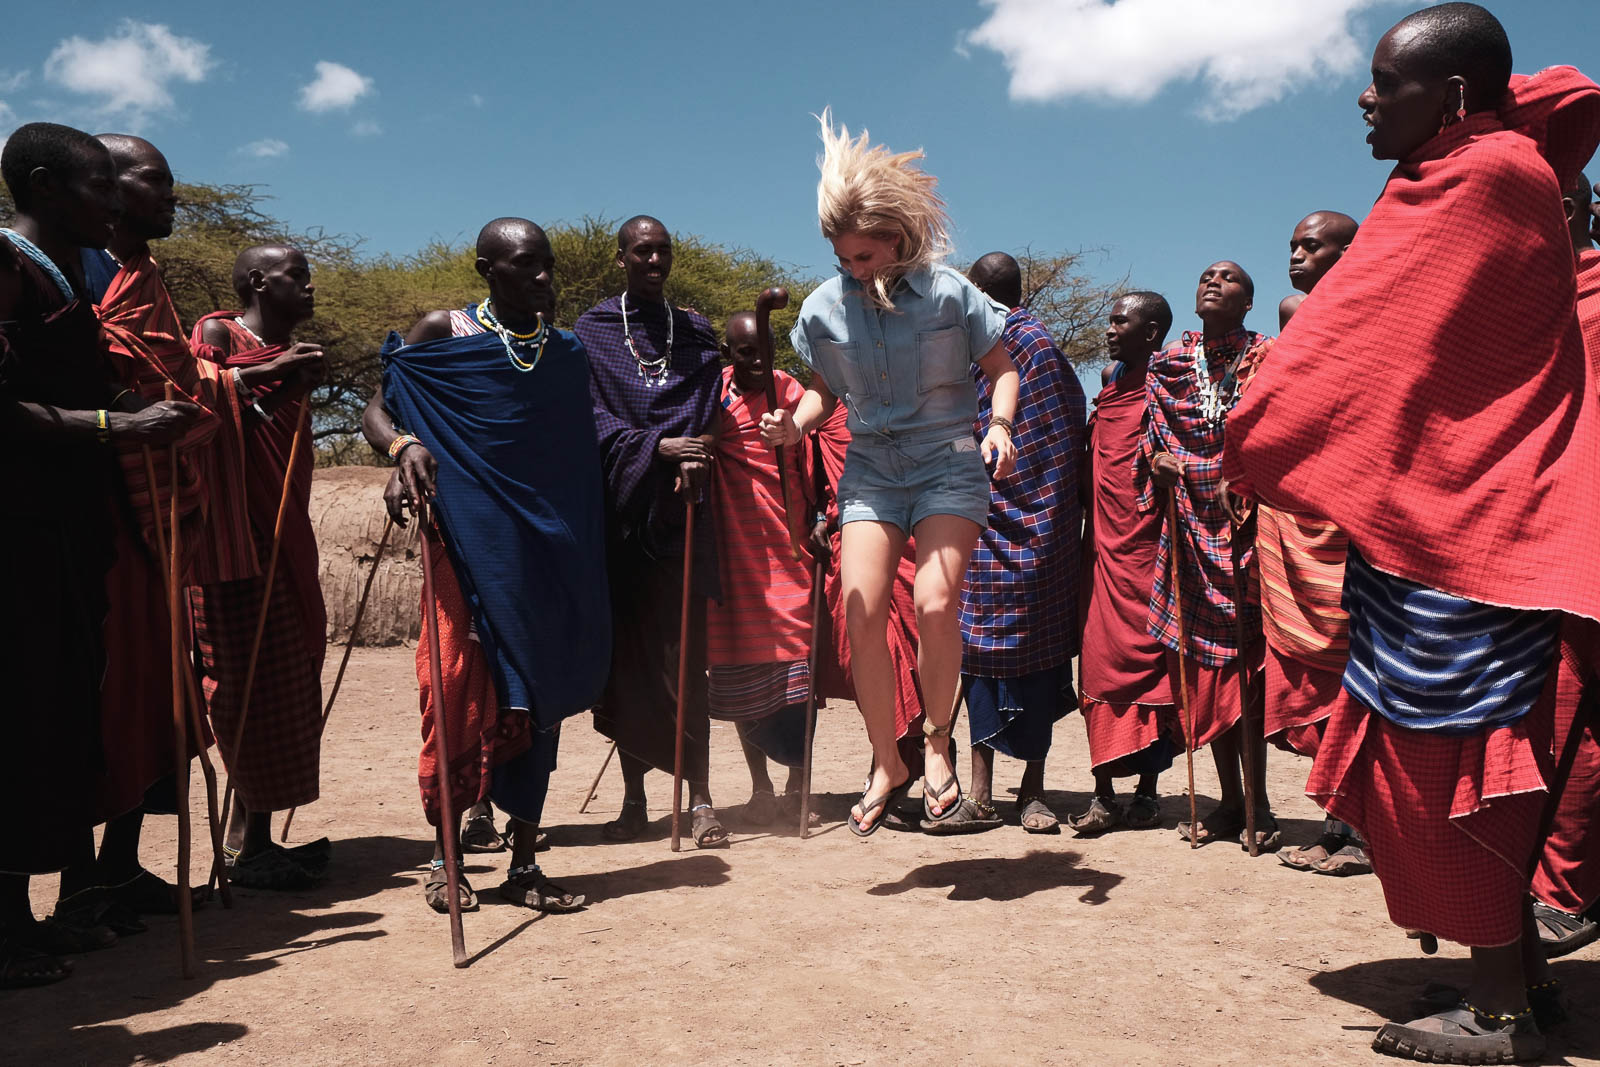 Laugh, jump and dance with the Maasai